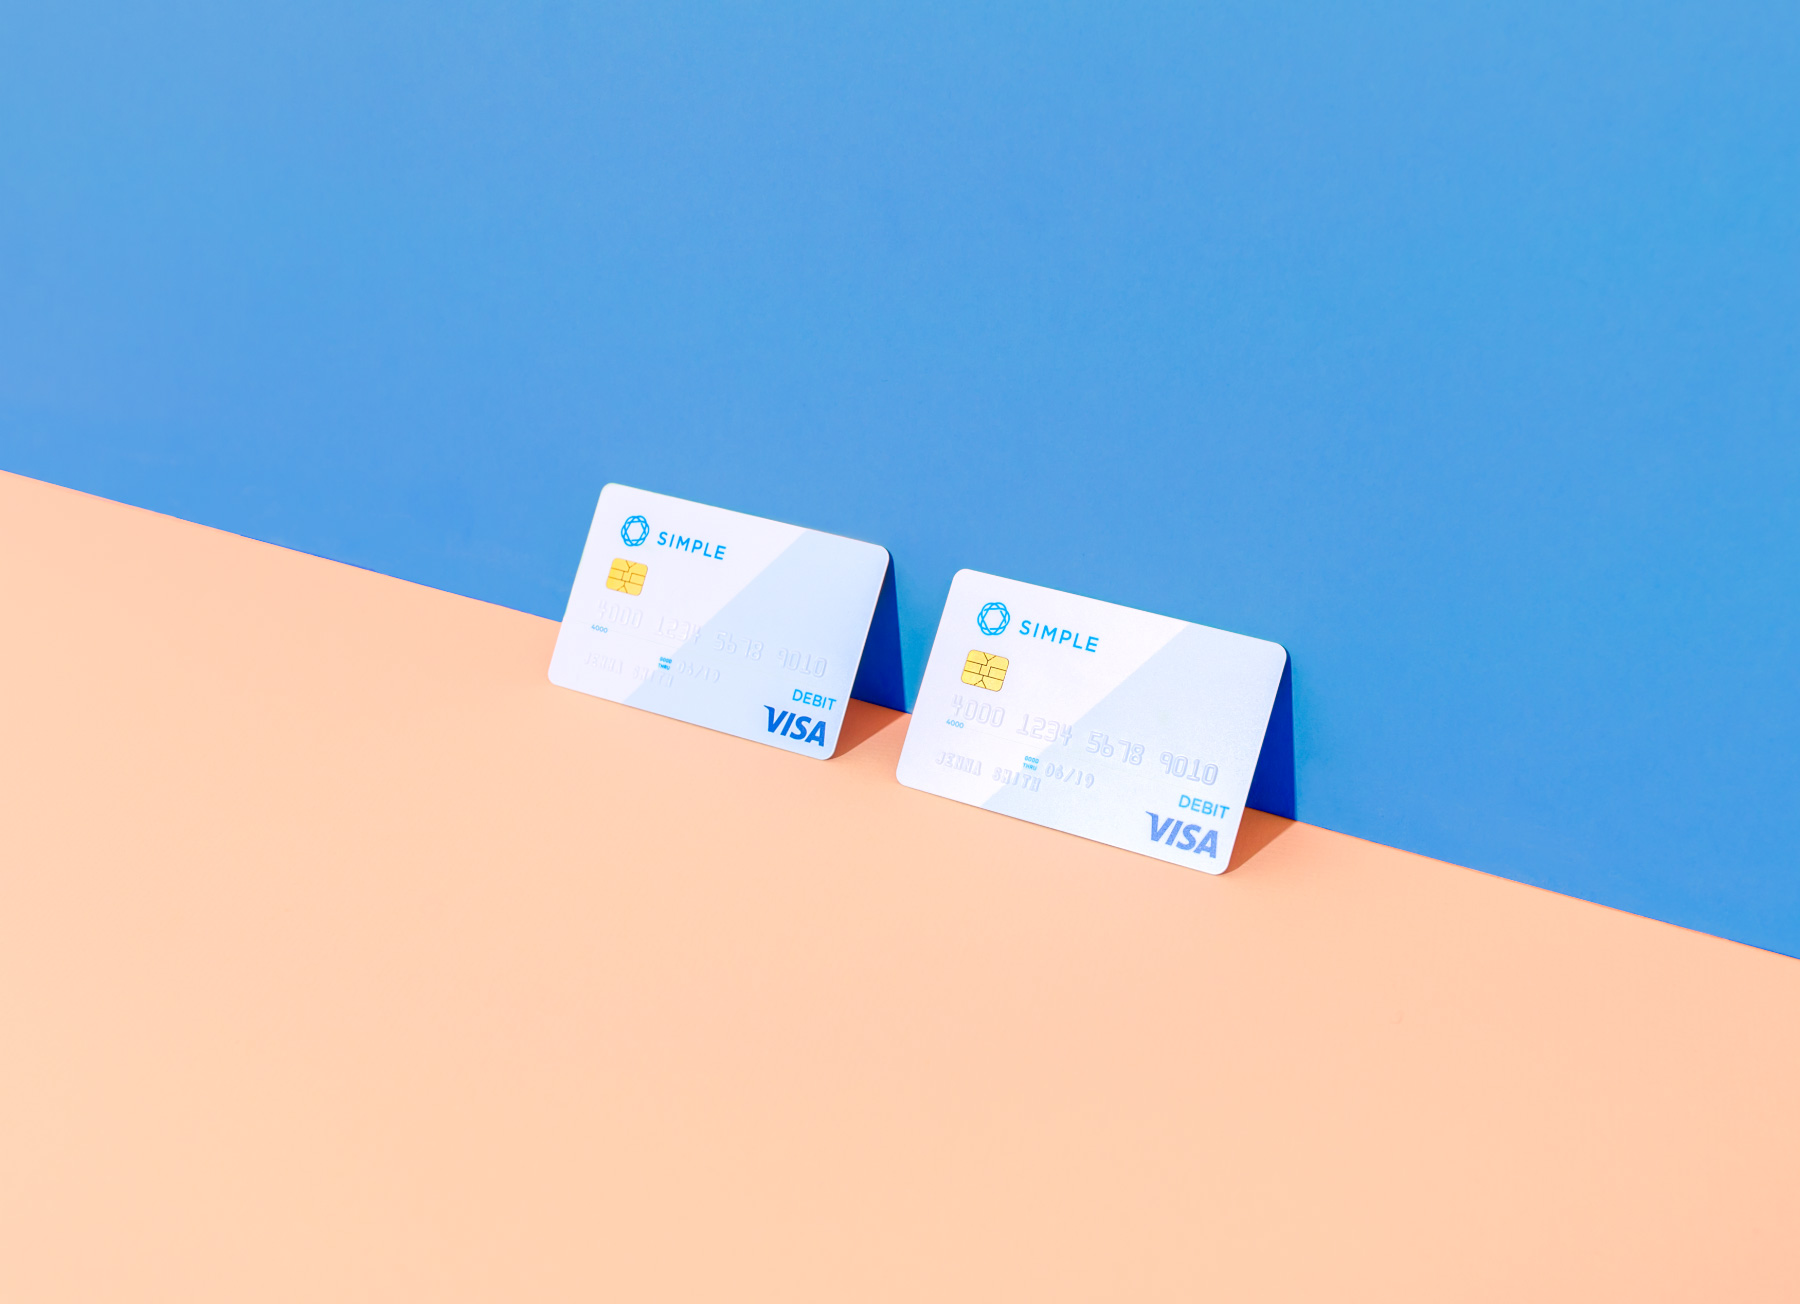 Simple's new kind of shared bank account targets unmarried